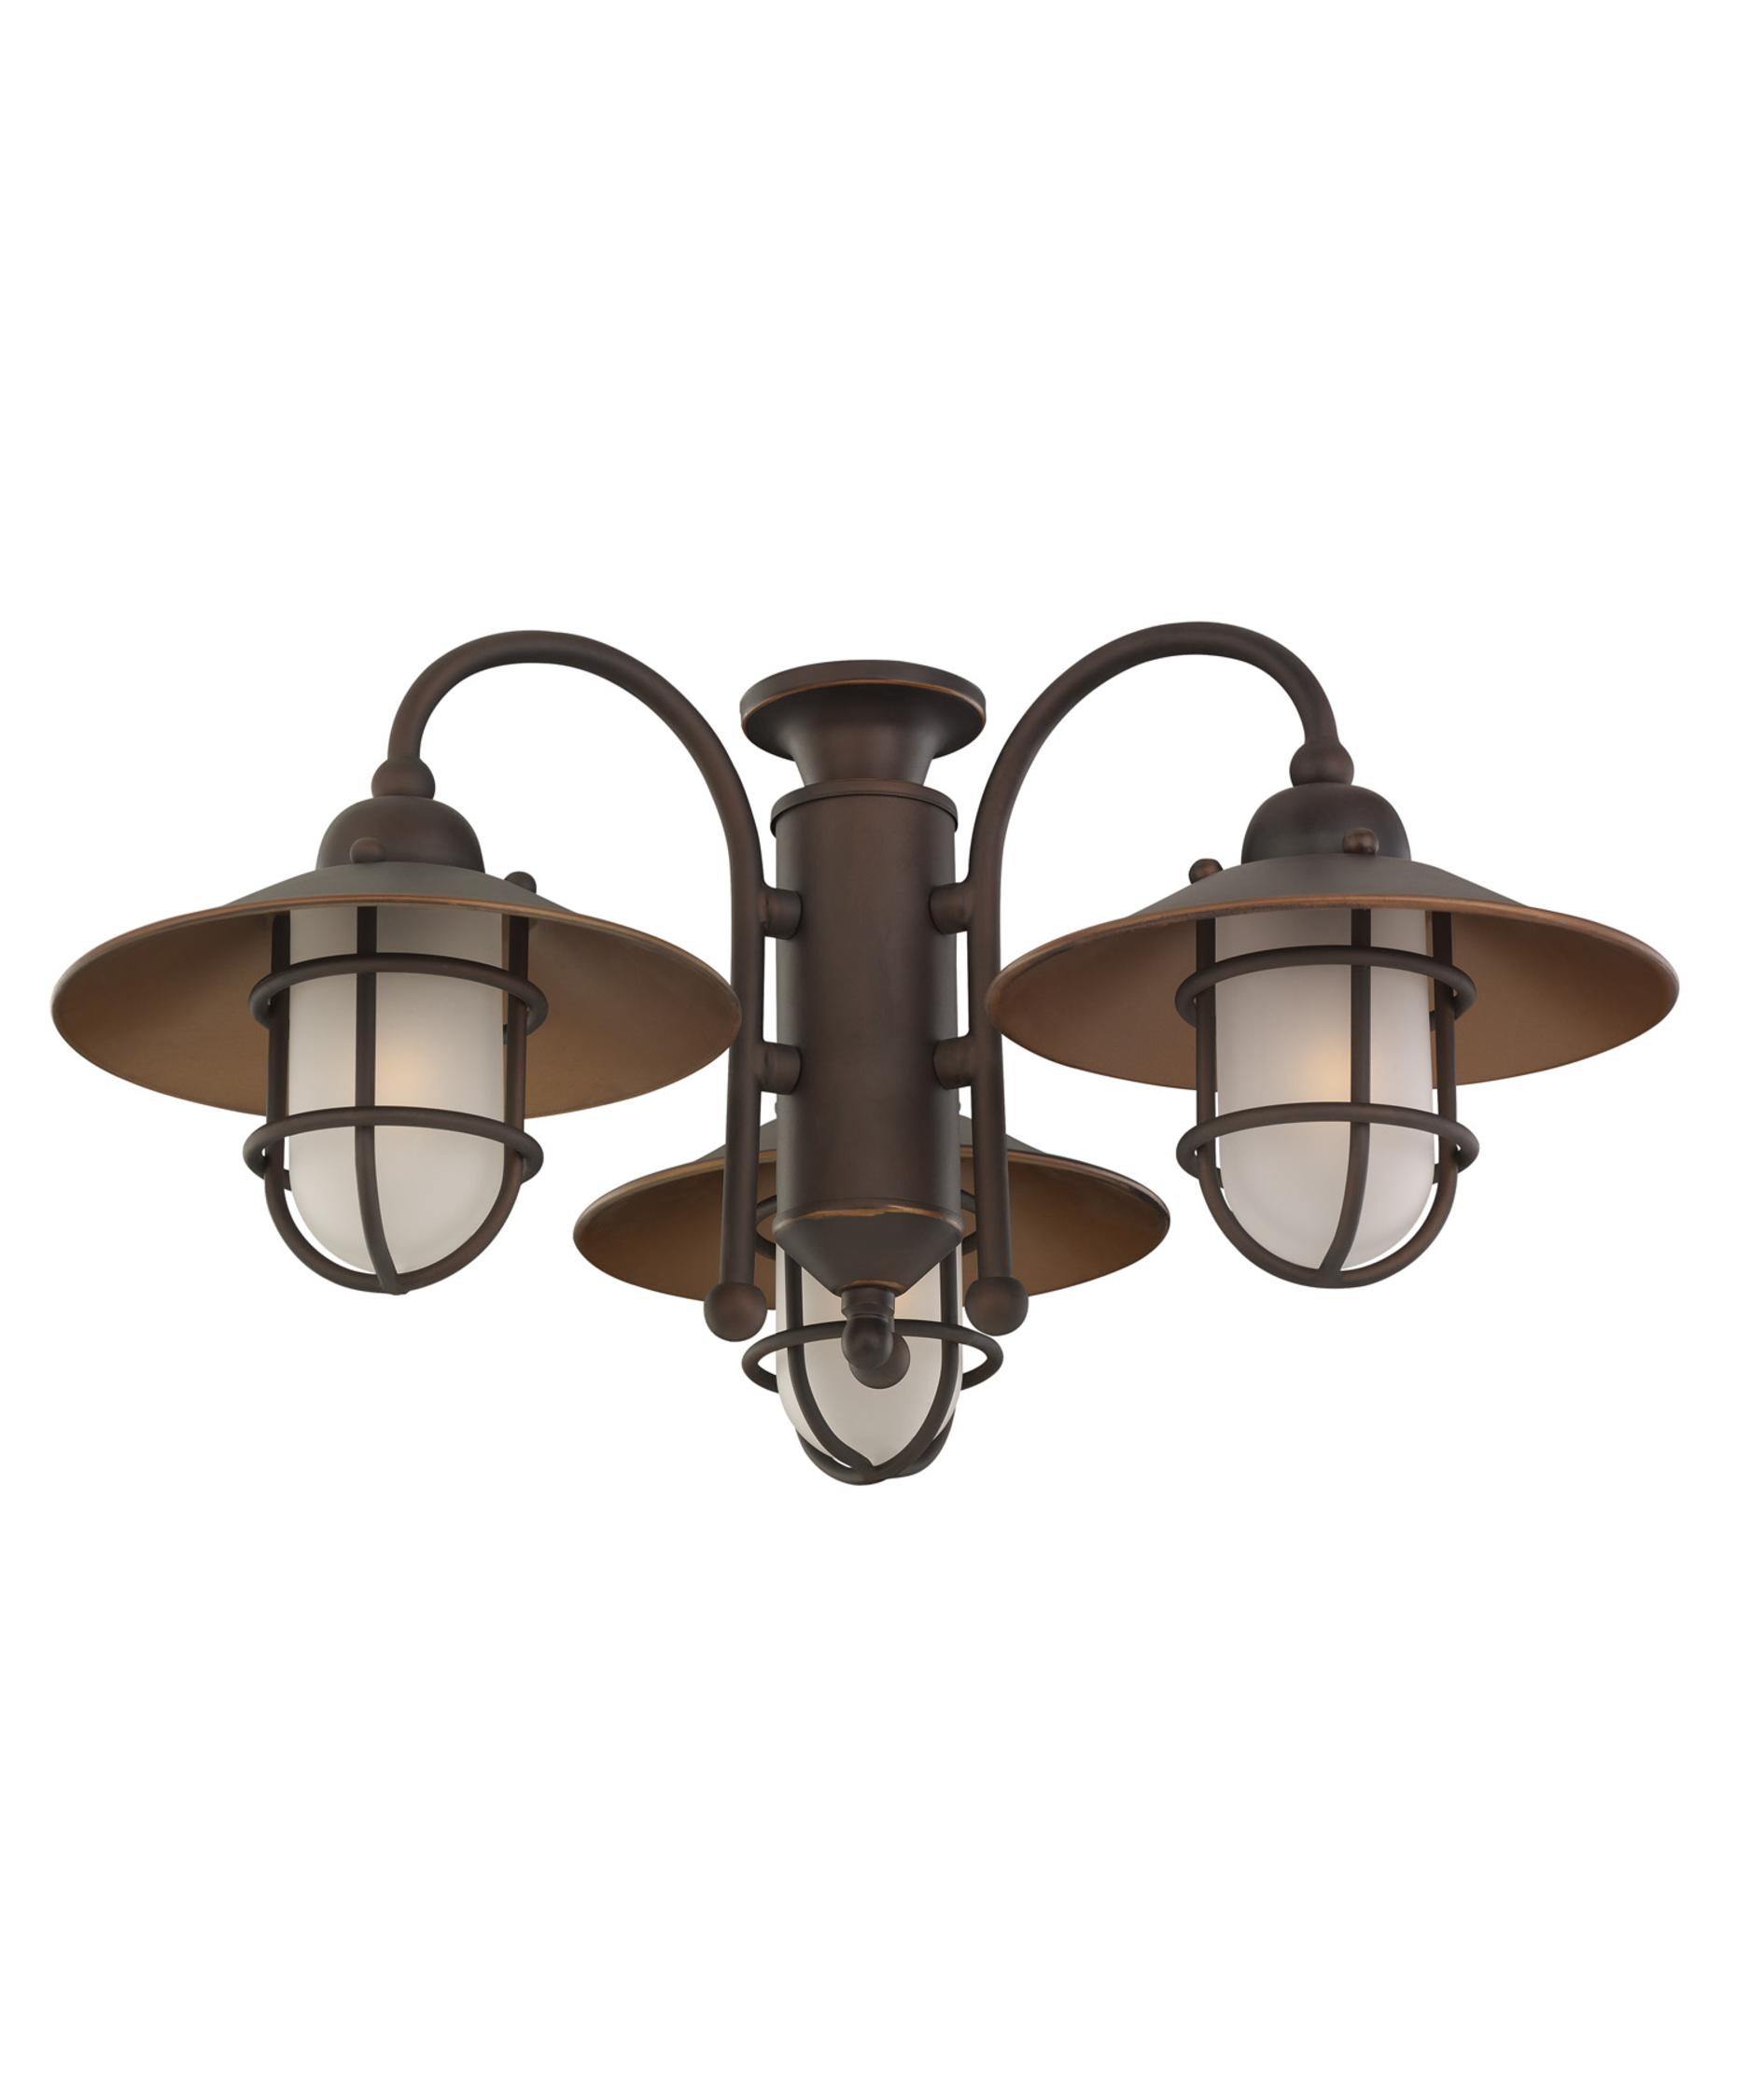 monte carlo mc89 railroad ceiling fan light kit capitol. Black Bedroom Furniture Sets. Home Design Ideas